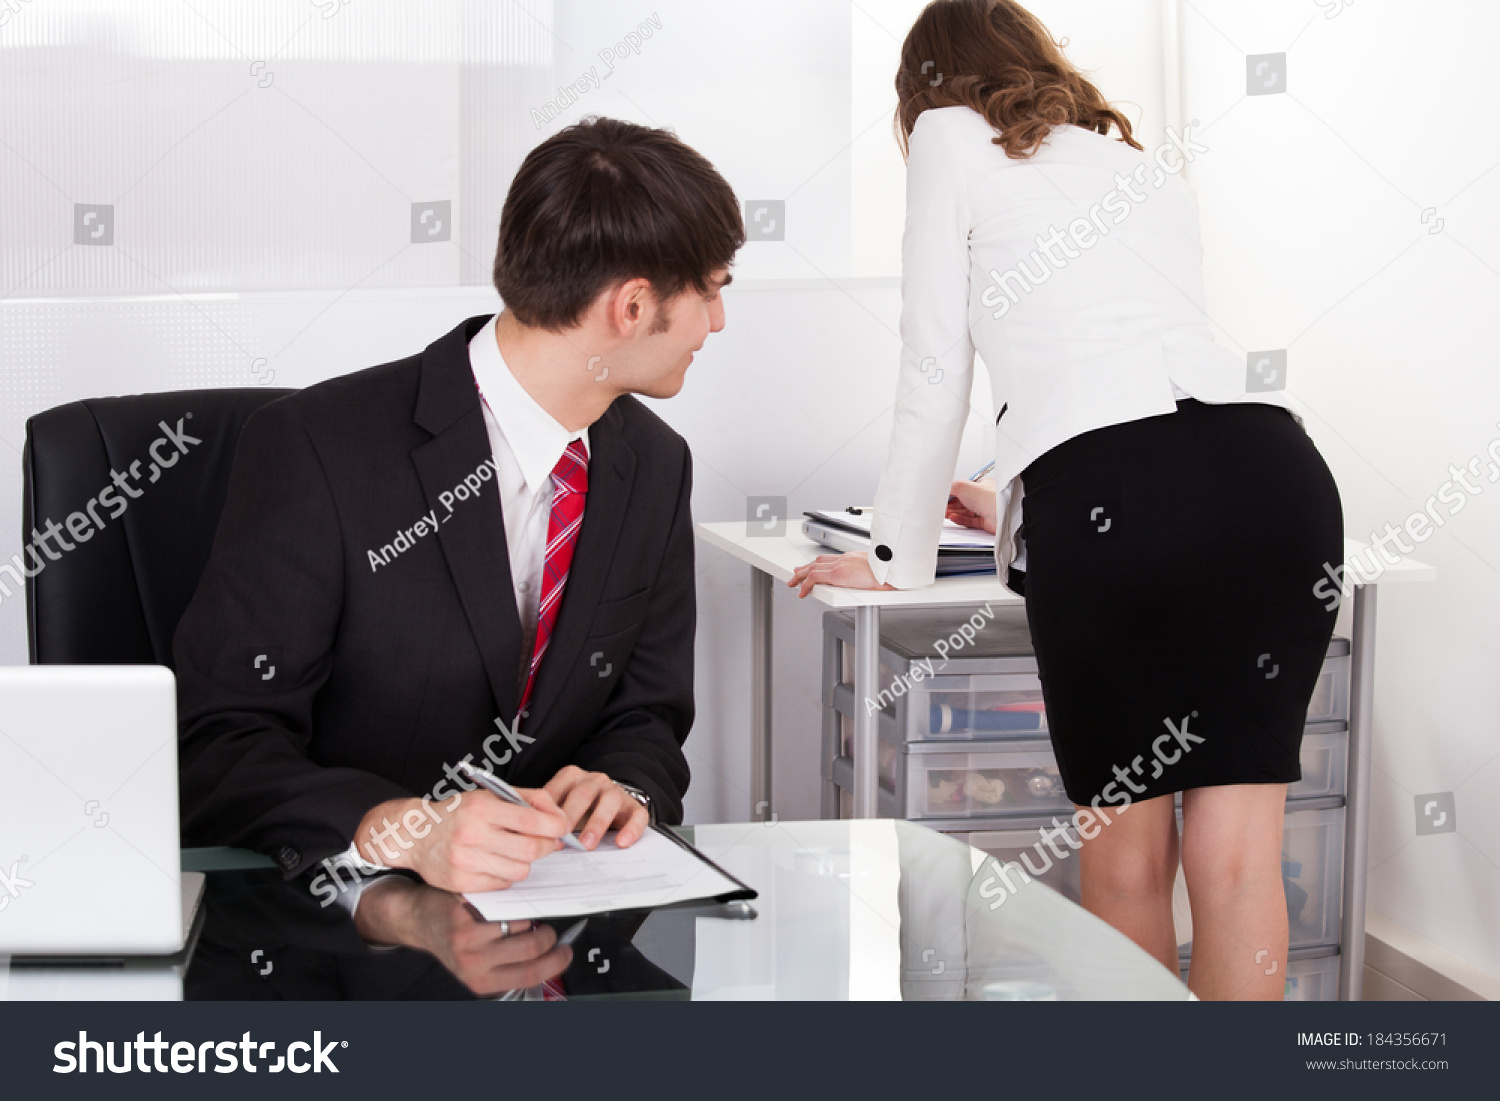 essay on working women problems Looking for the right topic for your essay here are 40 problem-solution essay topics to a study on women in abusive relationships and its problem: work-life.